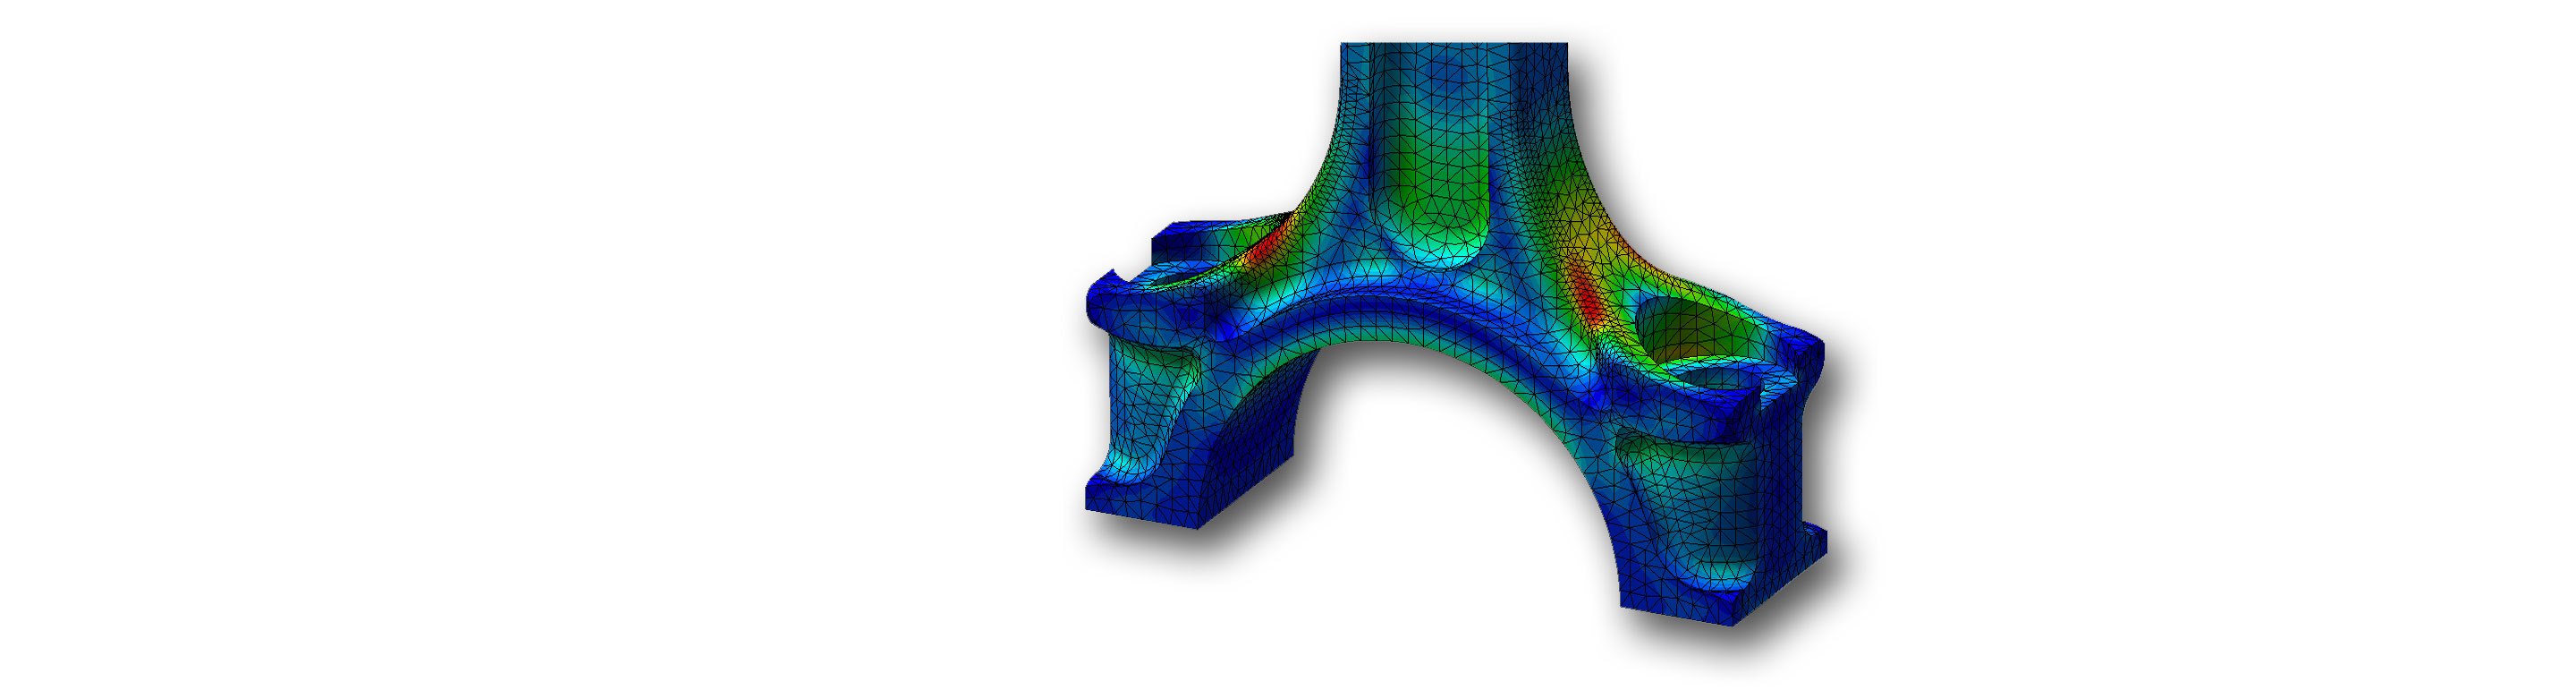 Connecting Rod Stress Analysis